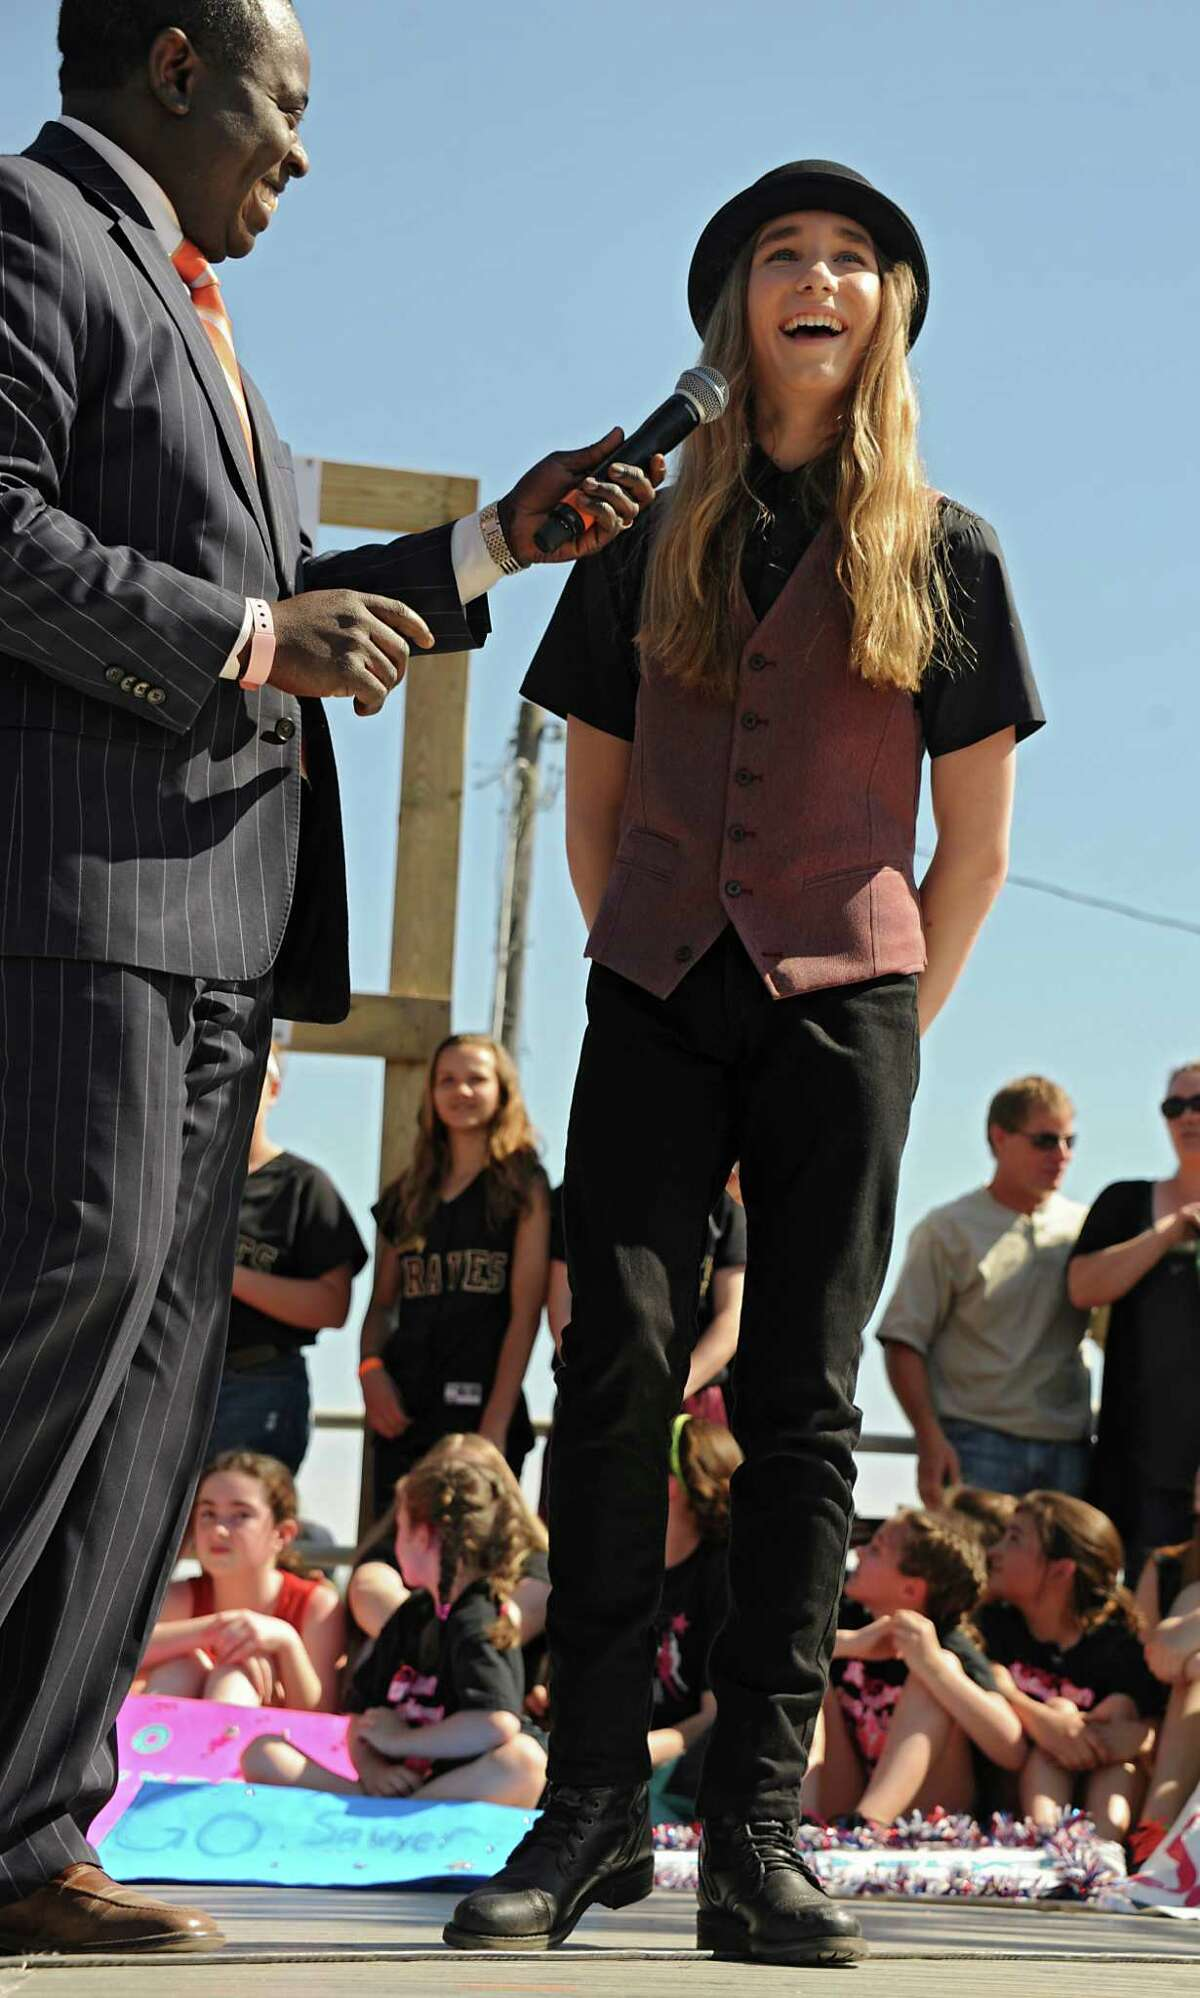 Dan Bazile of WNYT Channel 13 interviews Fultonville's own Sawyer Fredericks before Sawyer performs at the Fonda Speedway on Wednesday, May 6, 2015 in Fonda, N.Y. The 16-year-old singer/songwriter is one of the final six contestants on NBC's show The Voice. (Lori Van Buren / Times Union)